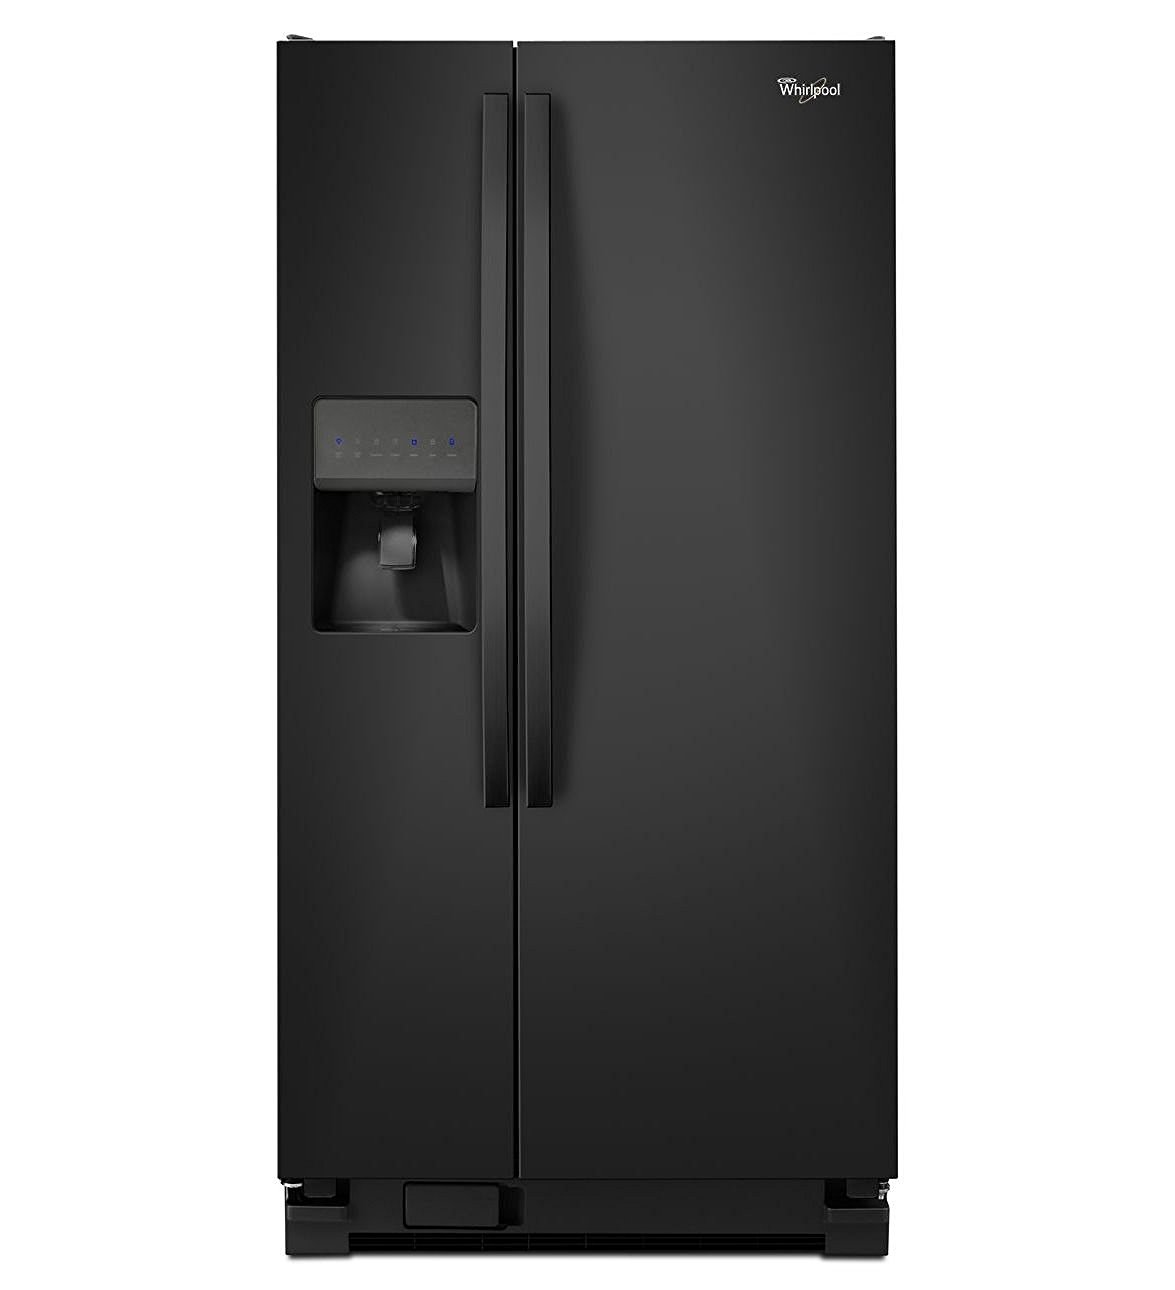 Whirlpool WRS322FDAB Side-By-Side Refrigerator and Freezer